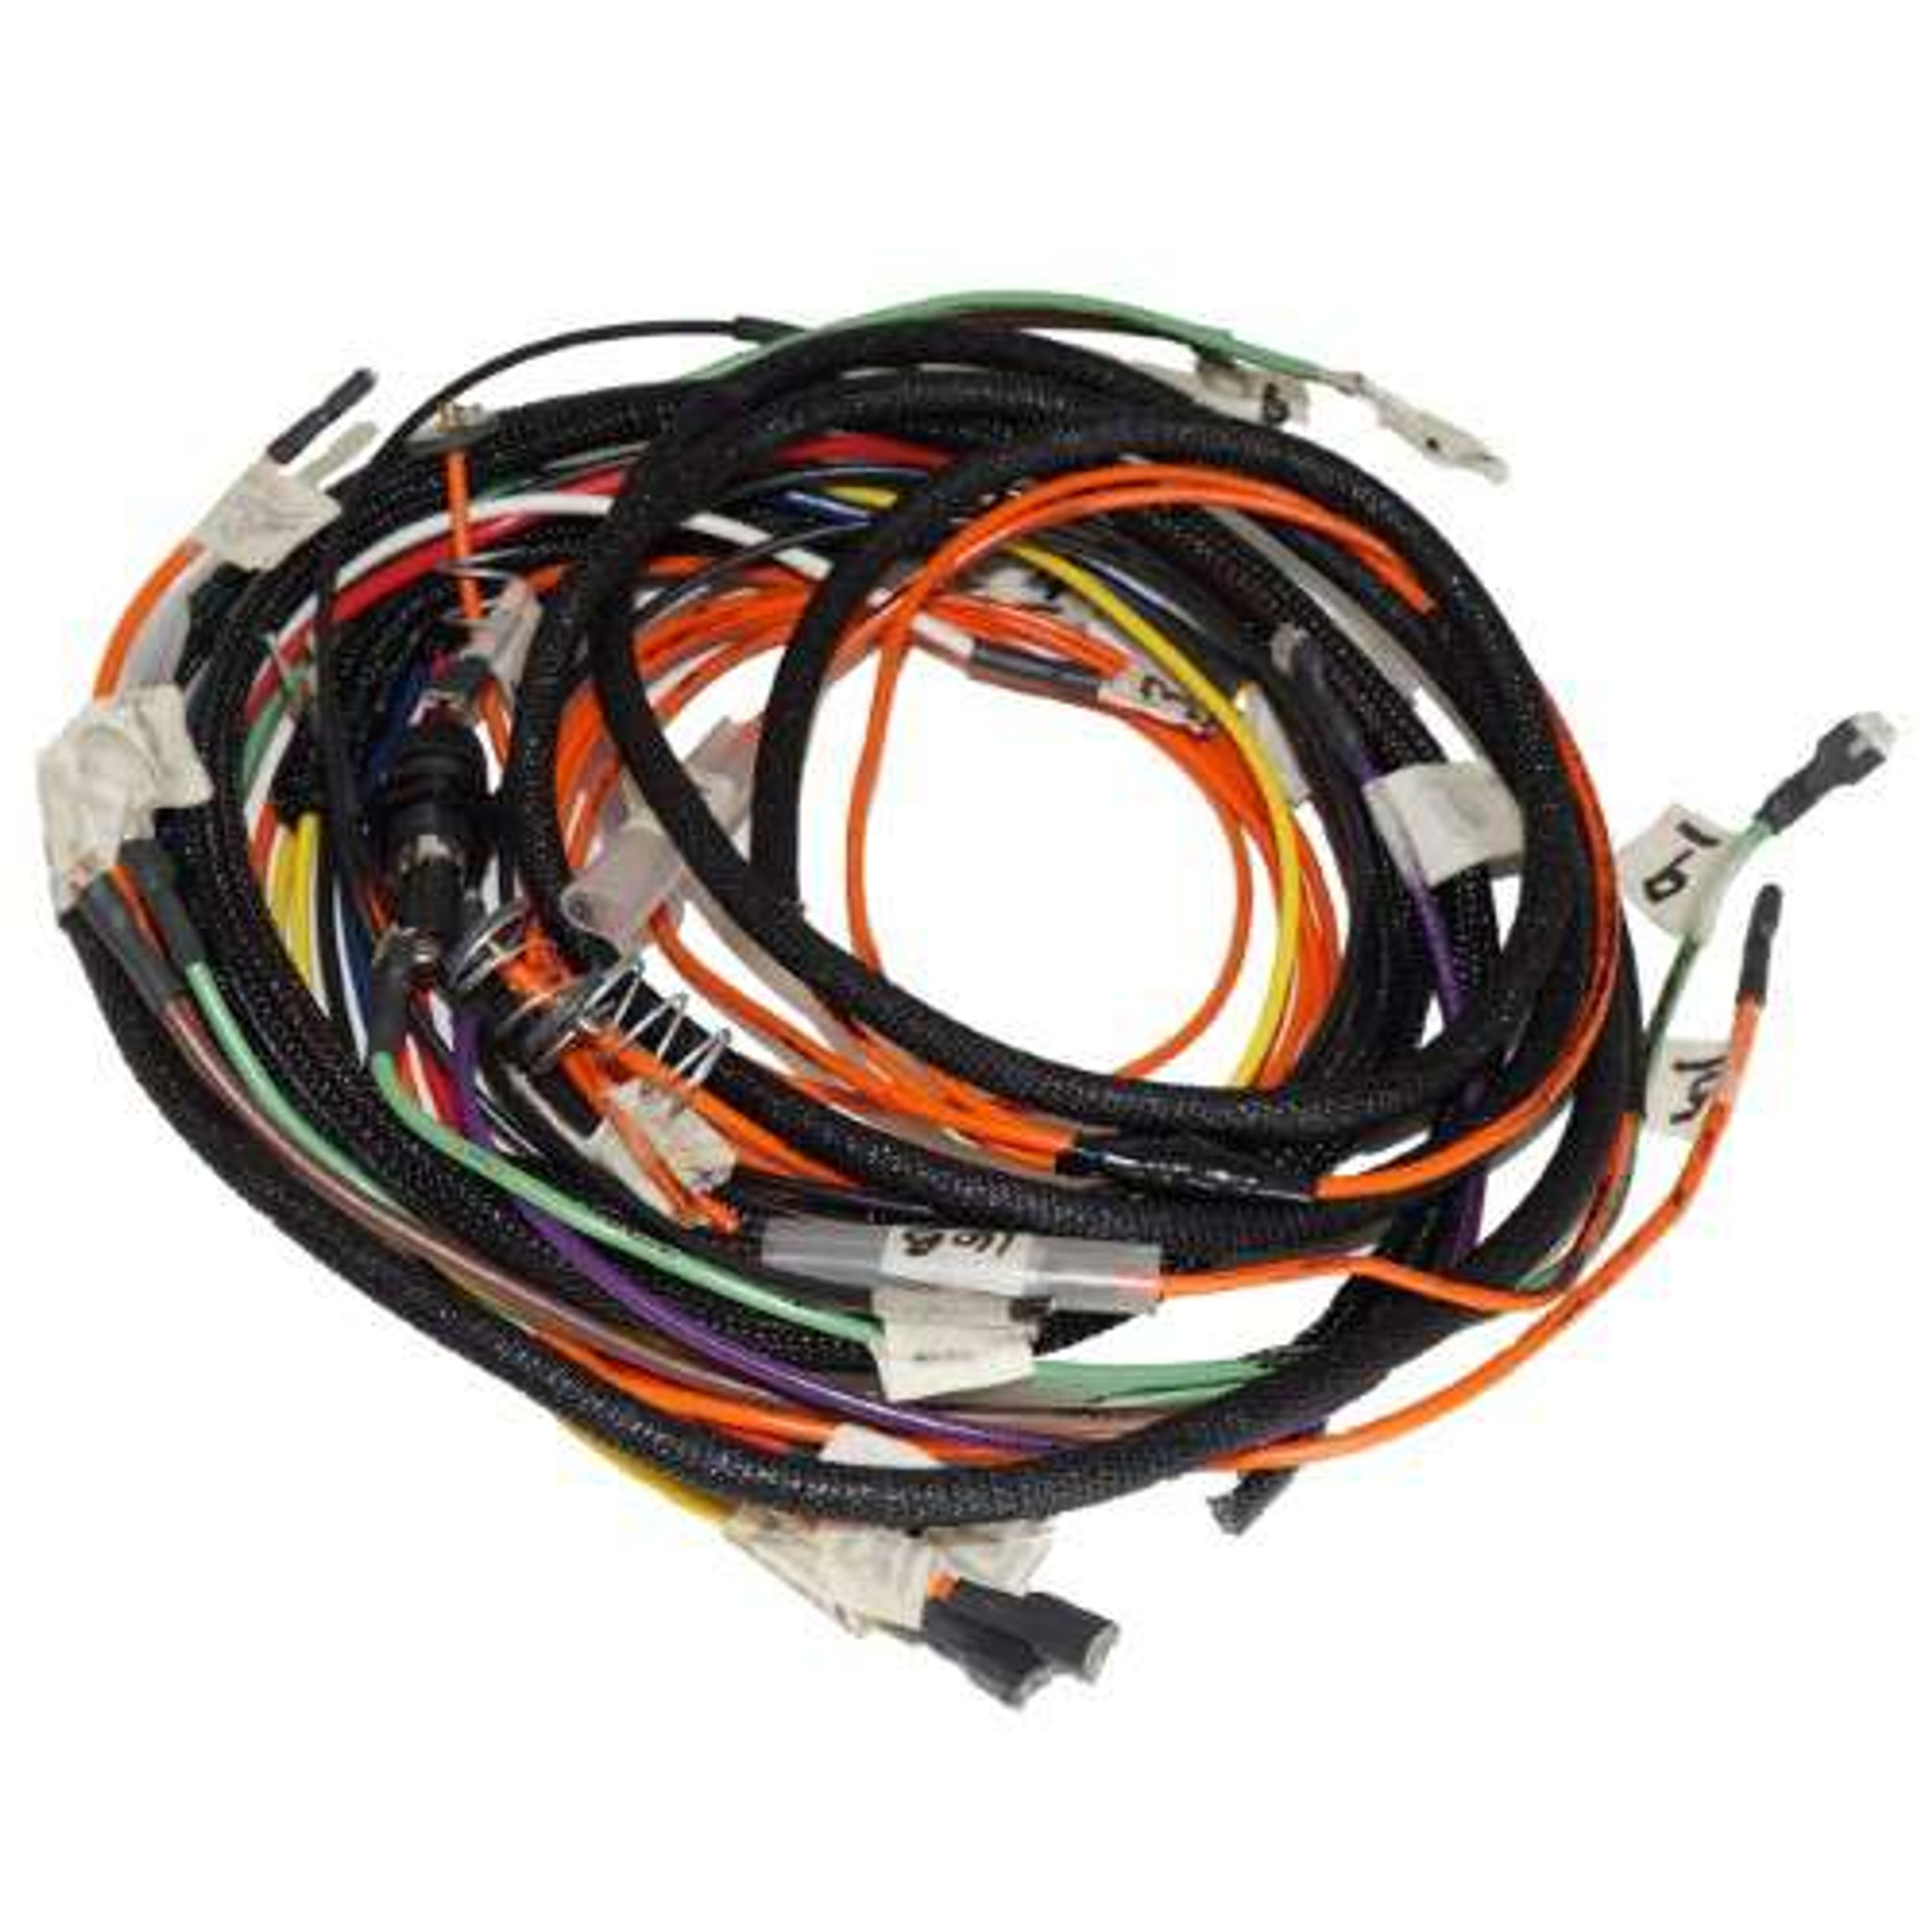 Wiring Harness Kit (Tractors with 1-Wire Alternator) | Allis ...